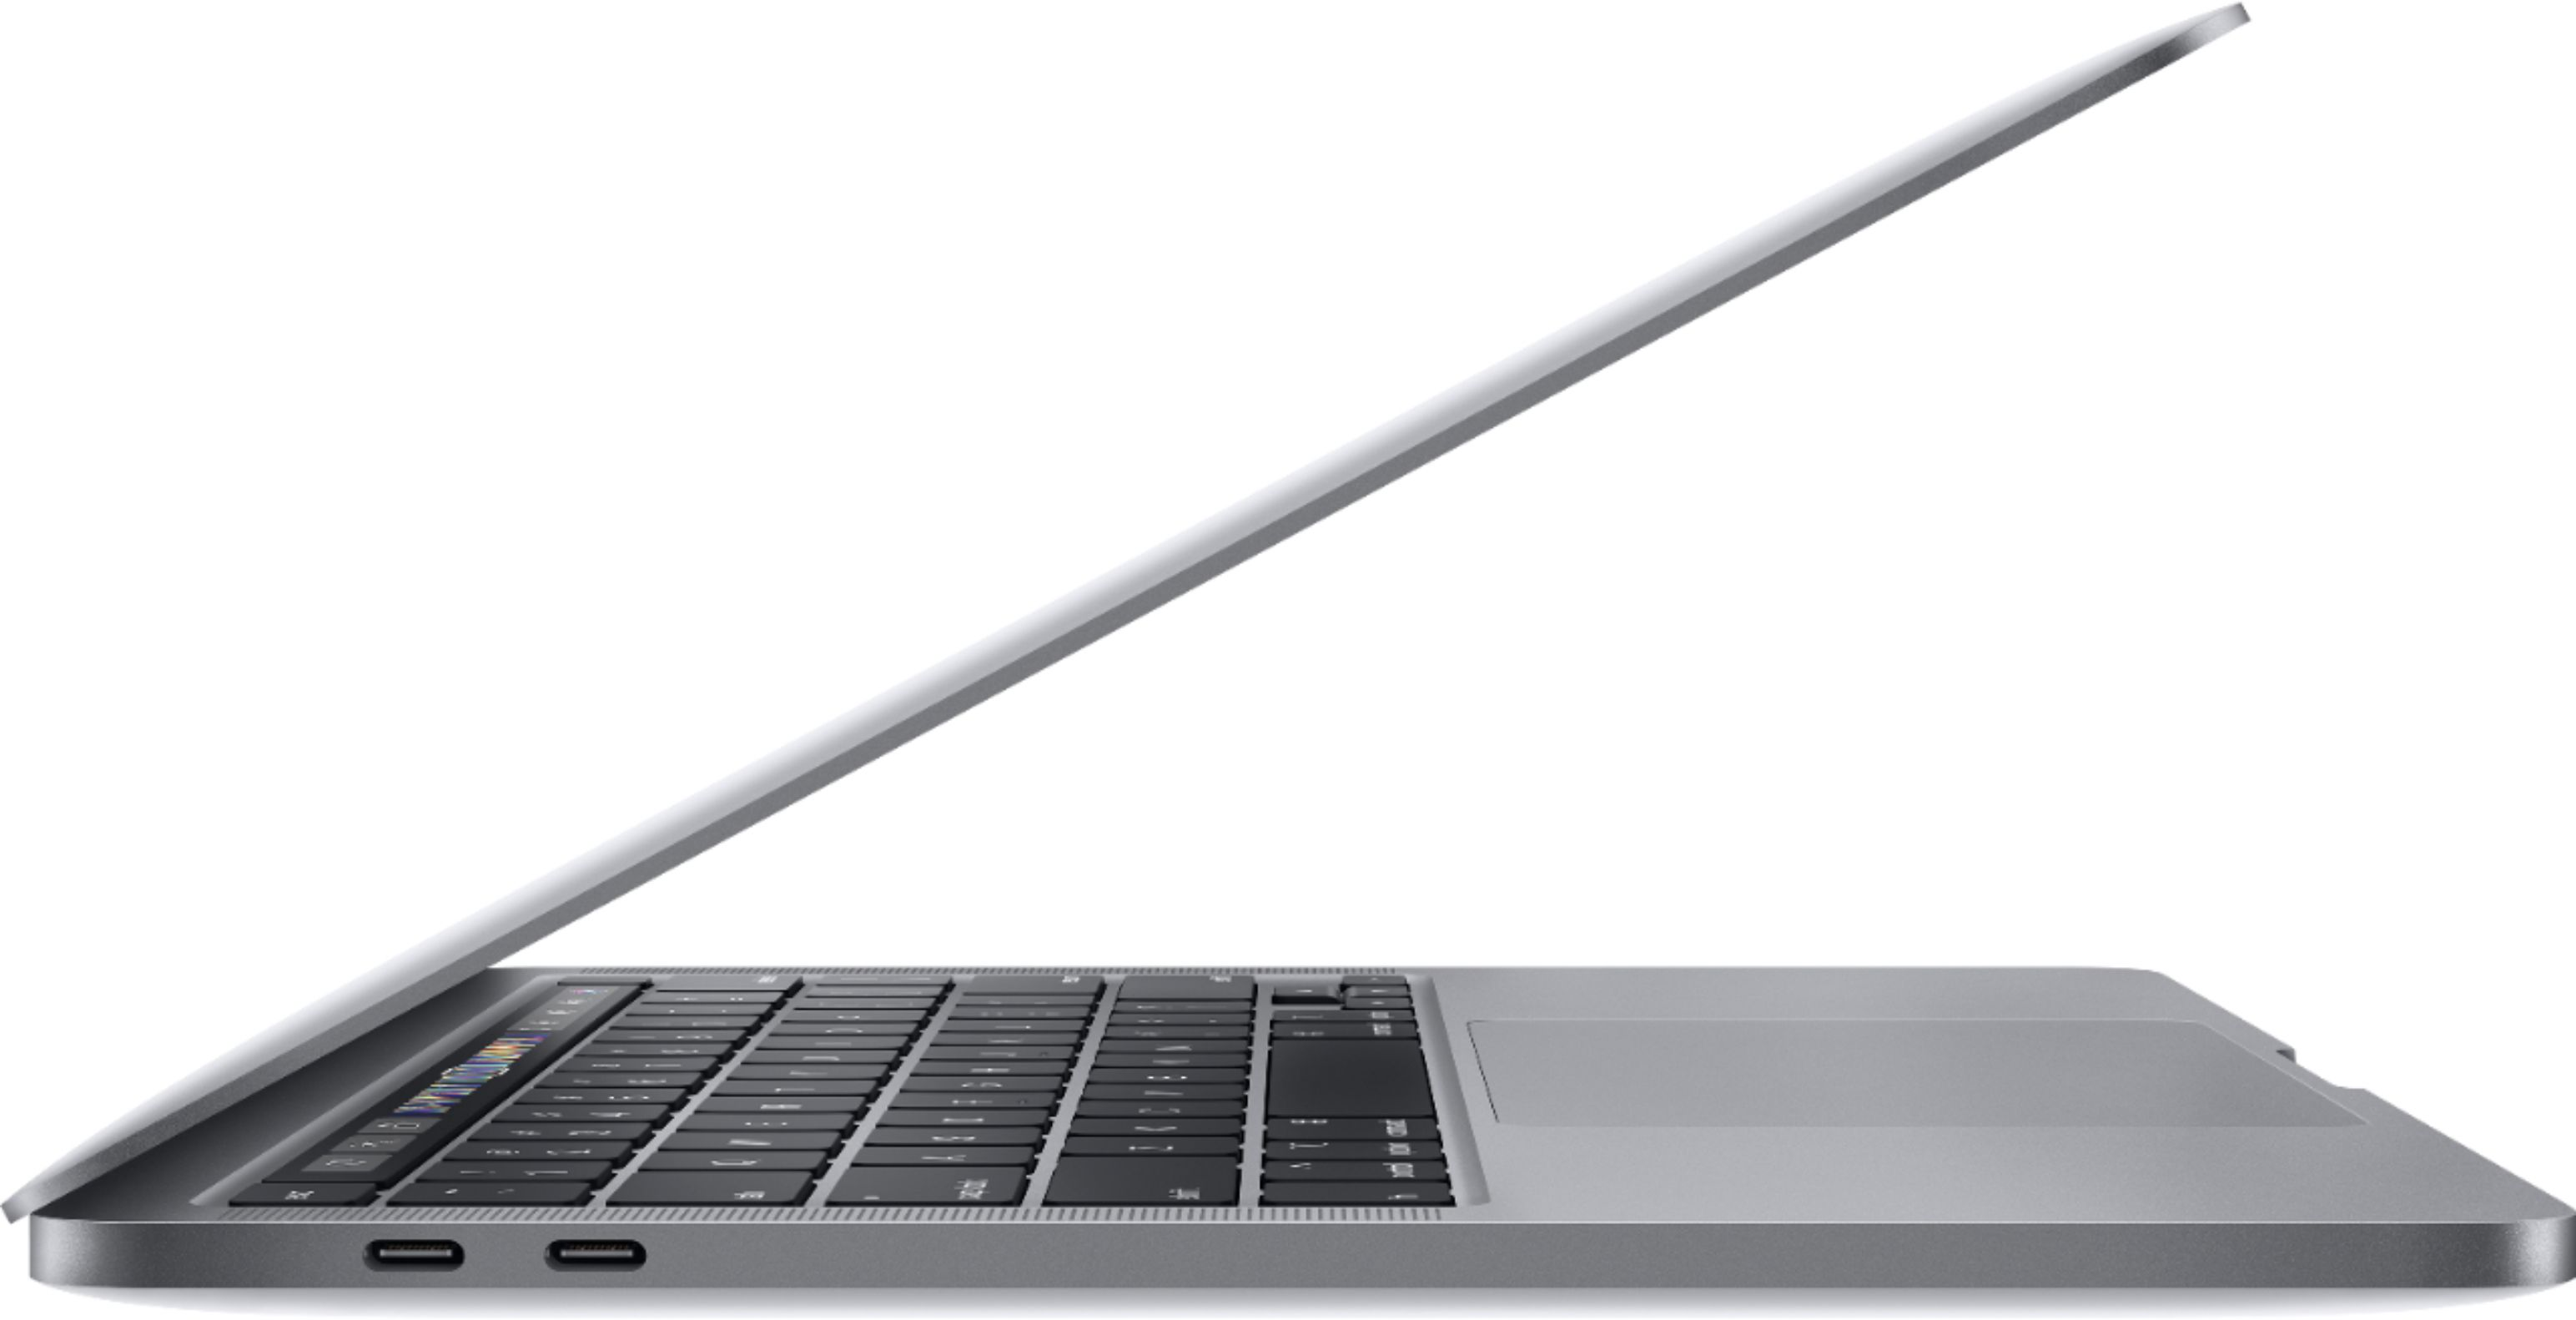 "Alt View Zoom 11. Apple - Geek Squad Certified Refurbished MacBook Pro - 13"" Display with Touch Bar - Intel Core i5 - 16GB Memory - 512GB SSD - Space Gray."